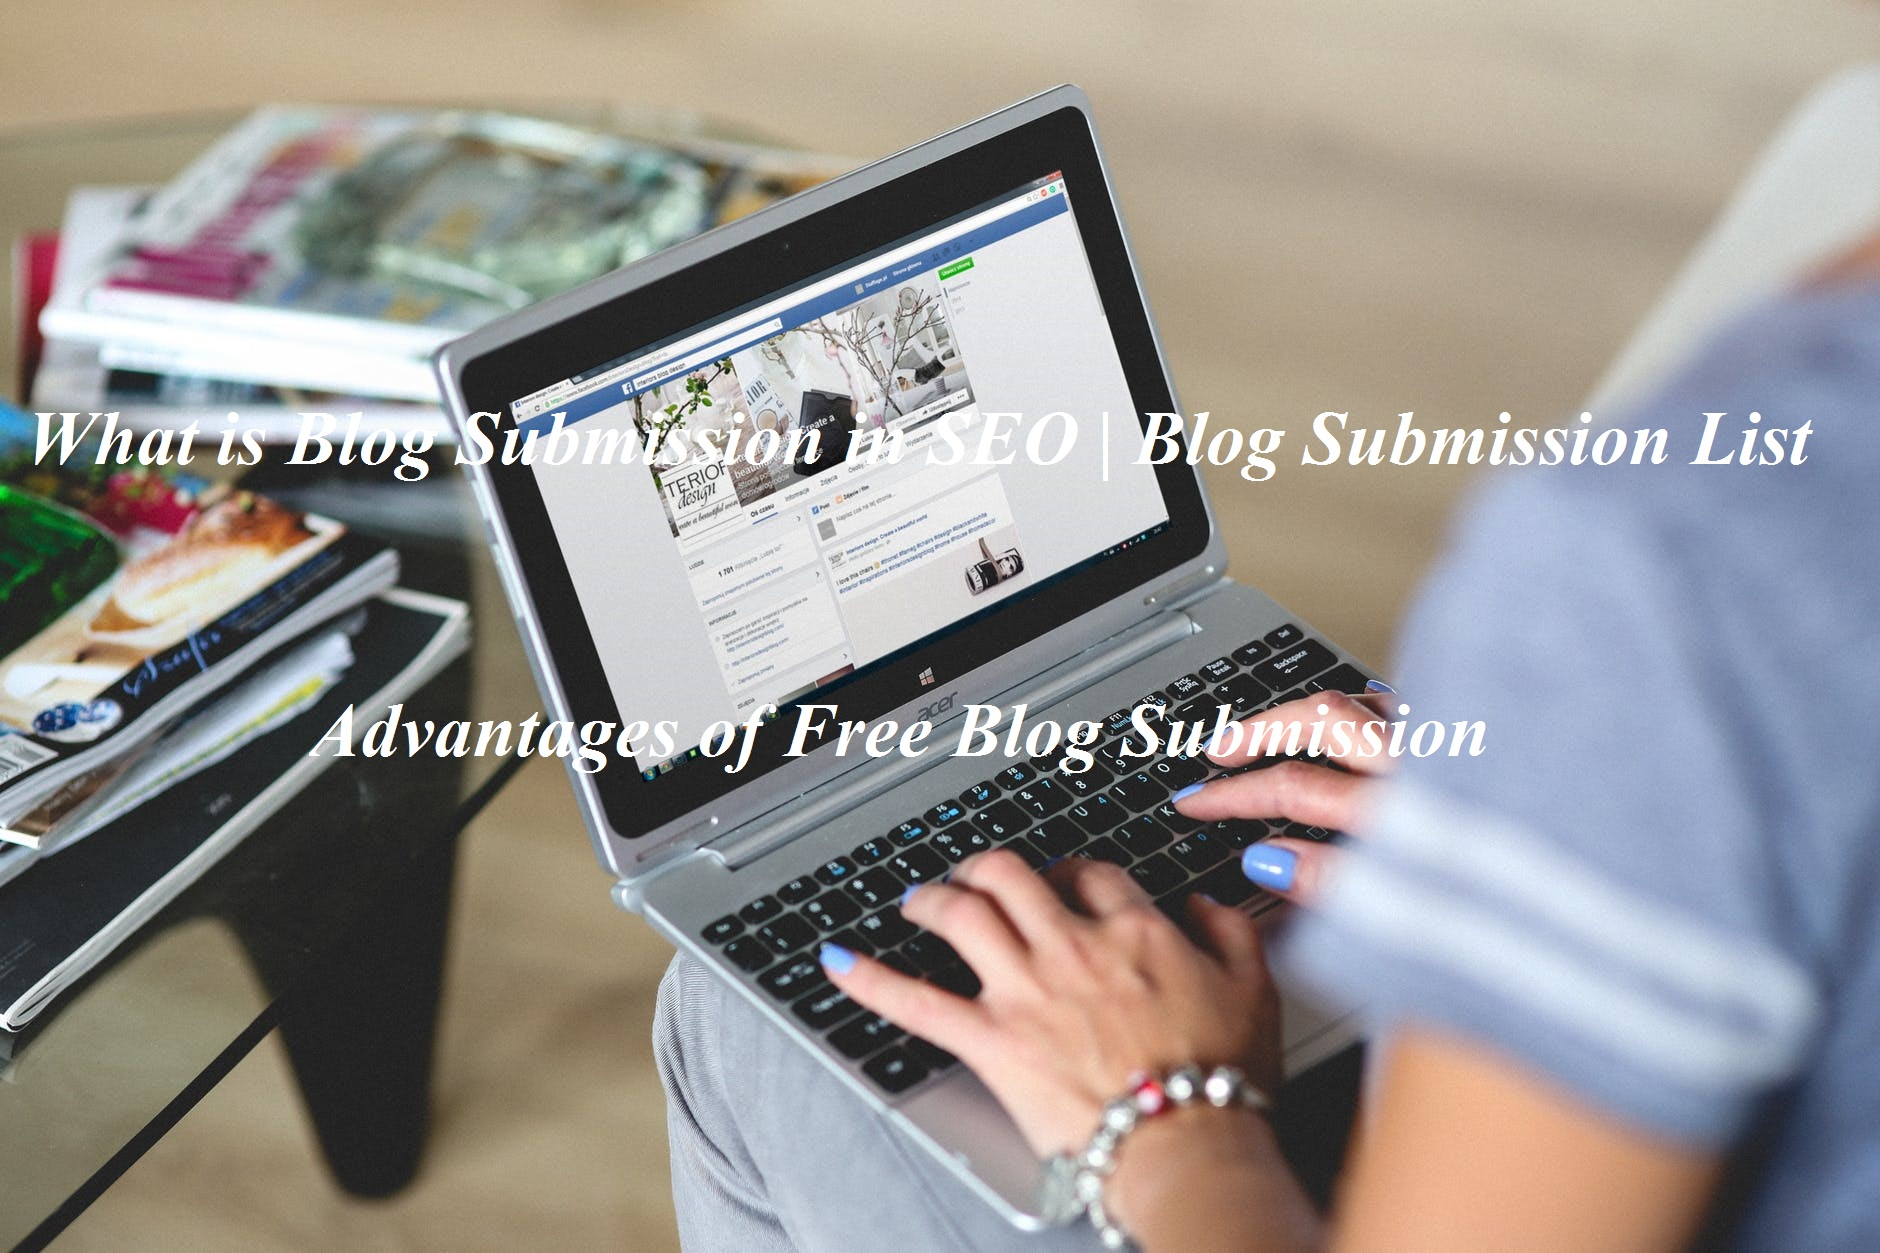 What is Blog Submission in SEO